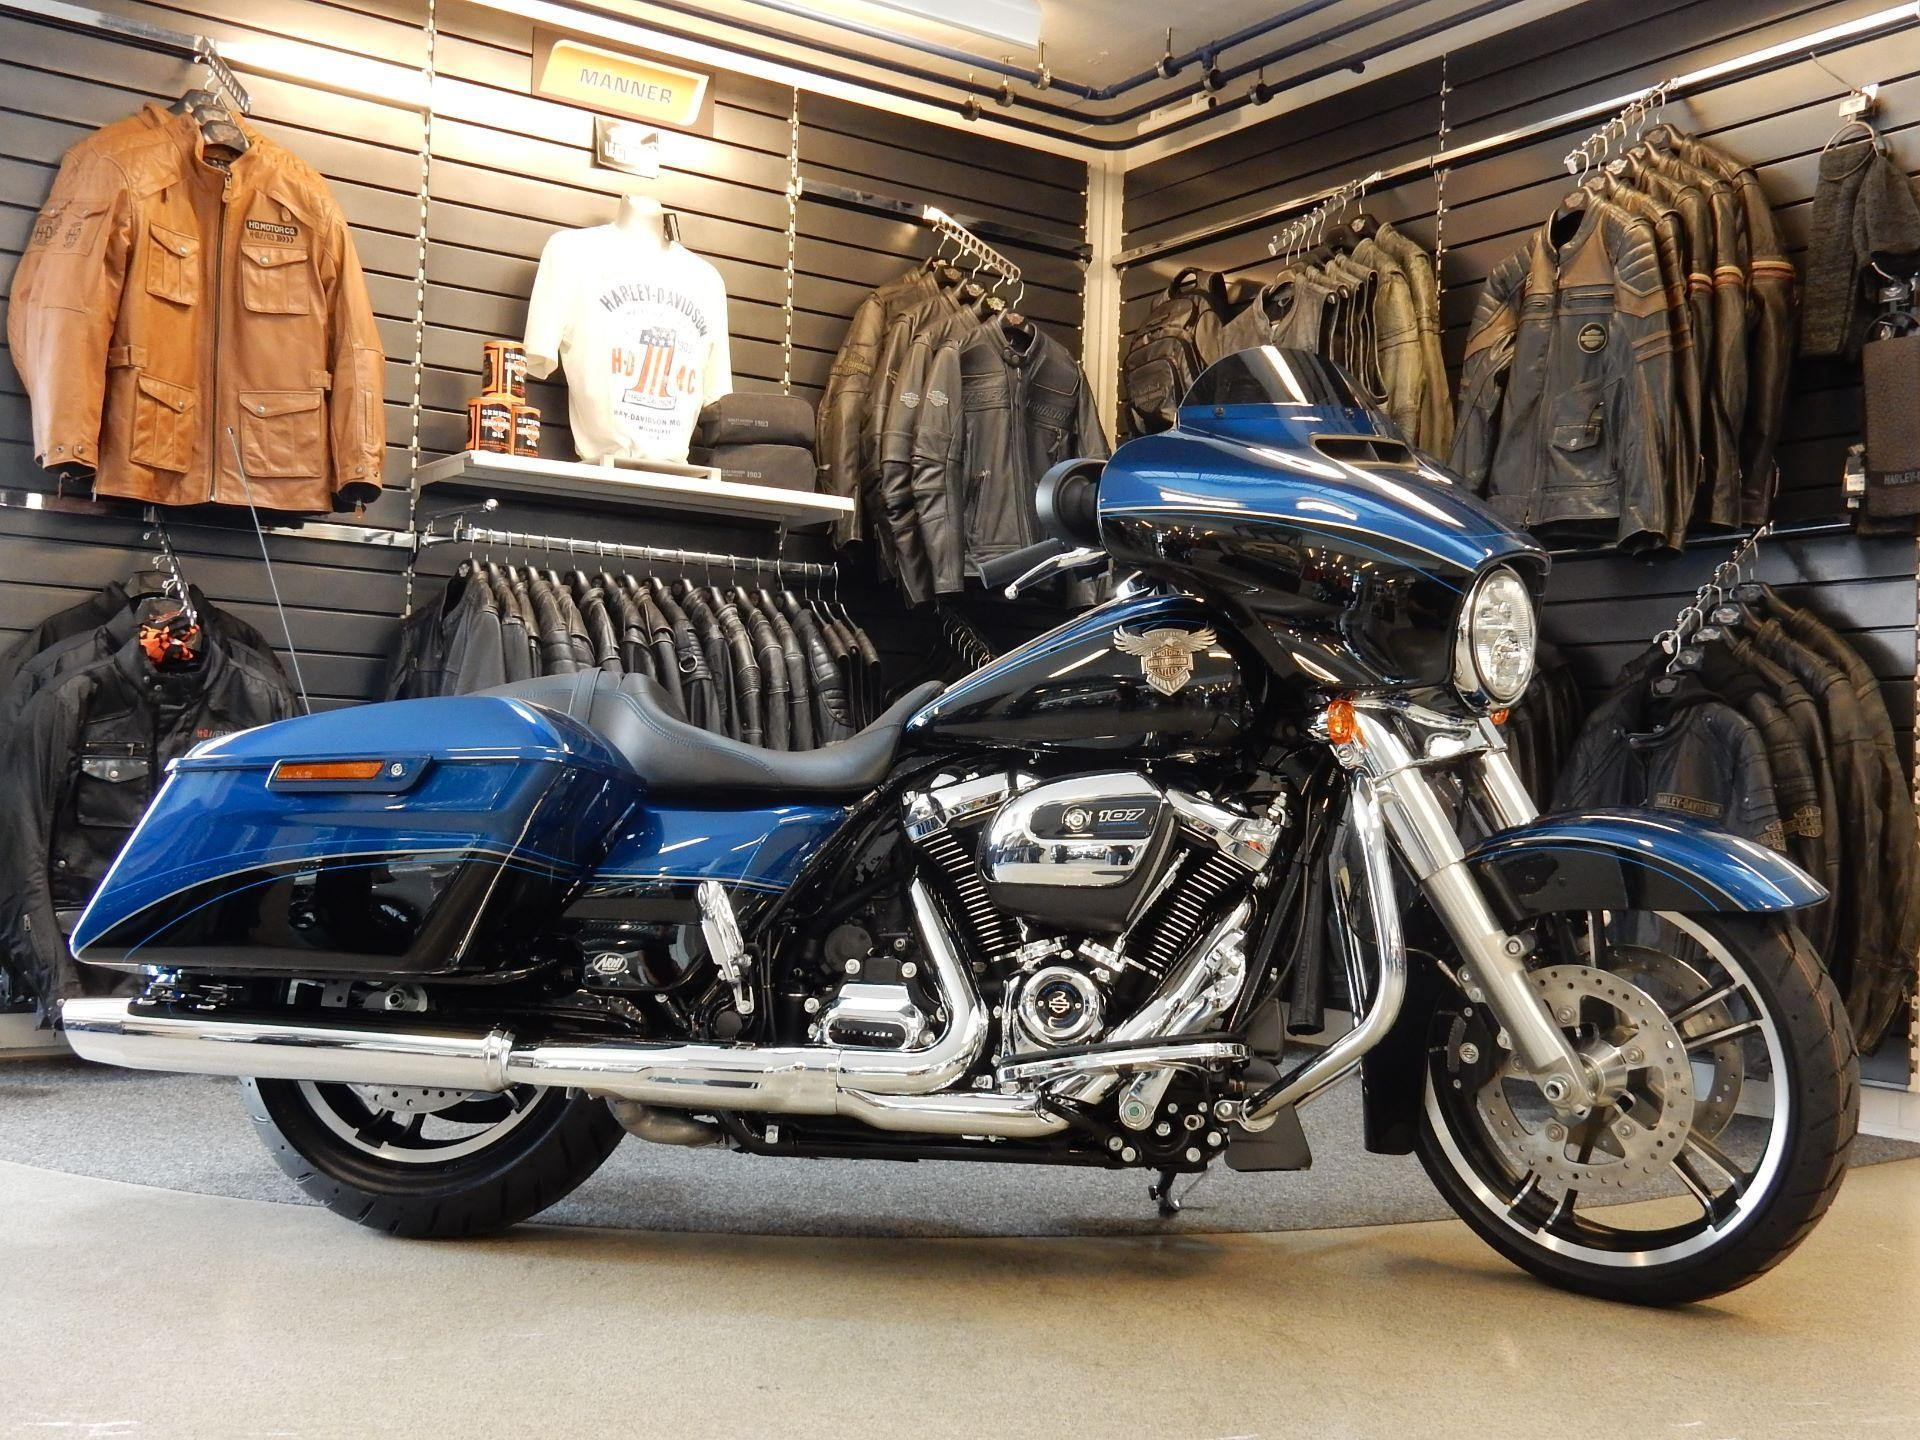 moto neuve acheter harley davidson flhx 1745 street glide 107 arni harley davidson hessigkofen. Black Bedroom Furniture Sets. Home Design Ideas